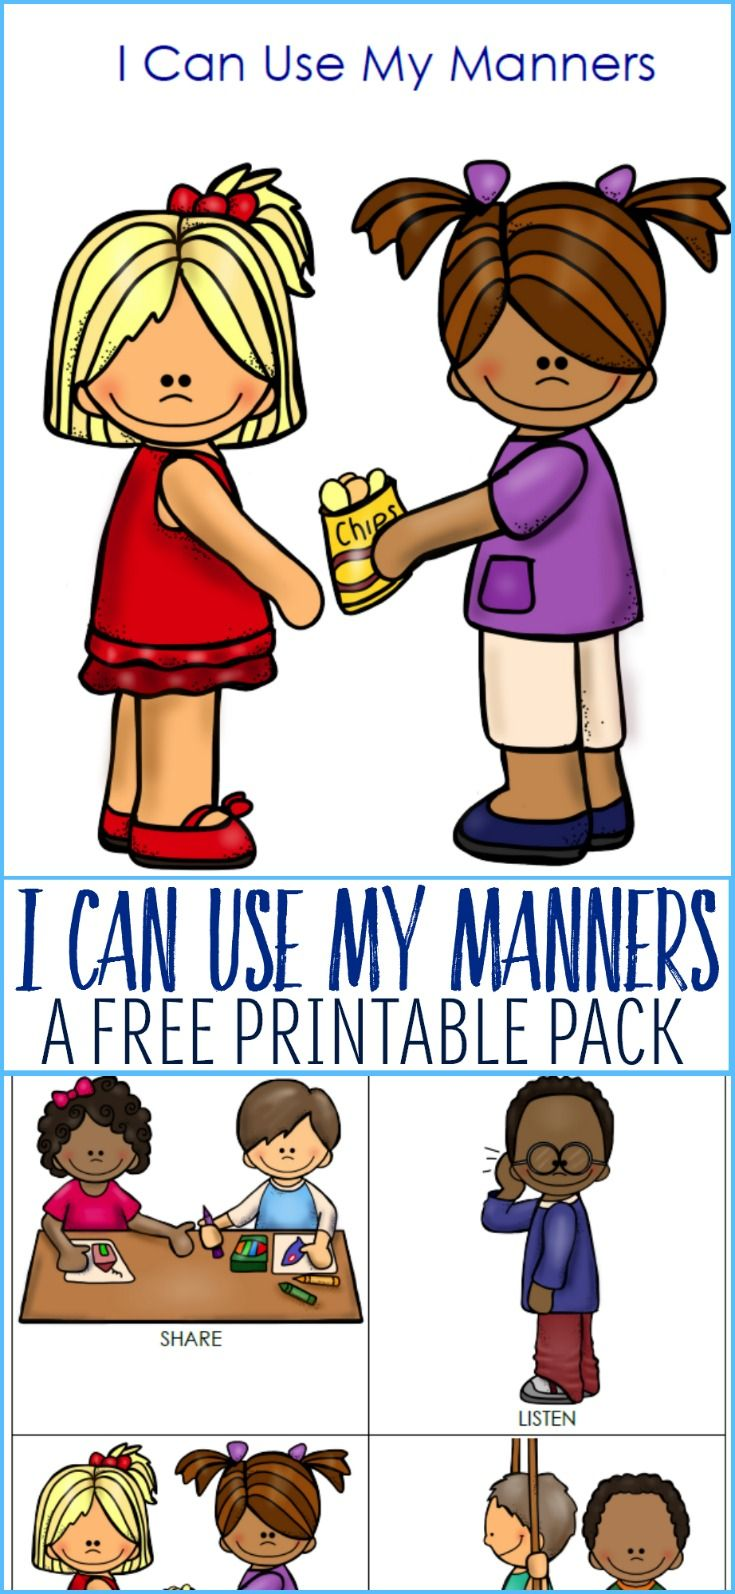 best printable images. Activities clipart social activity